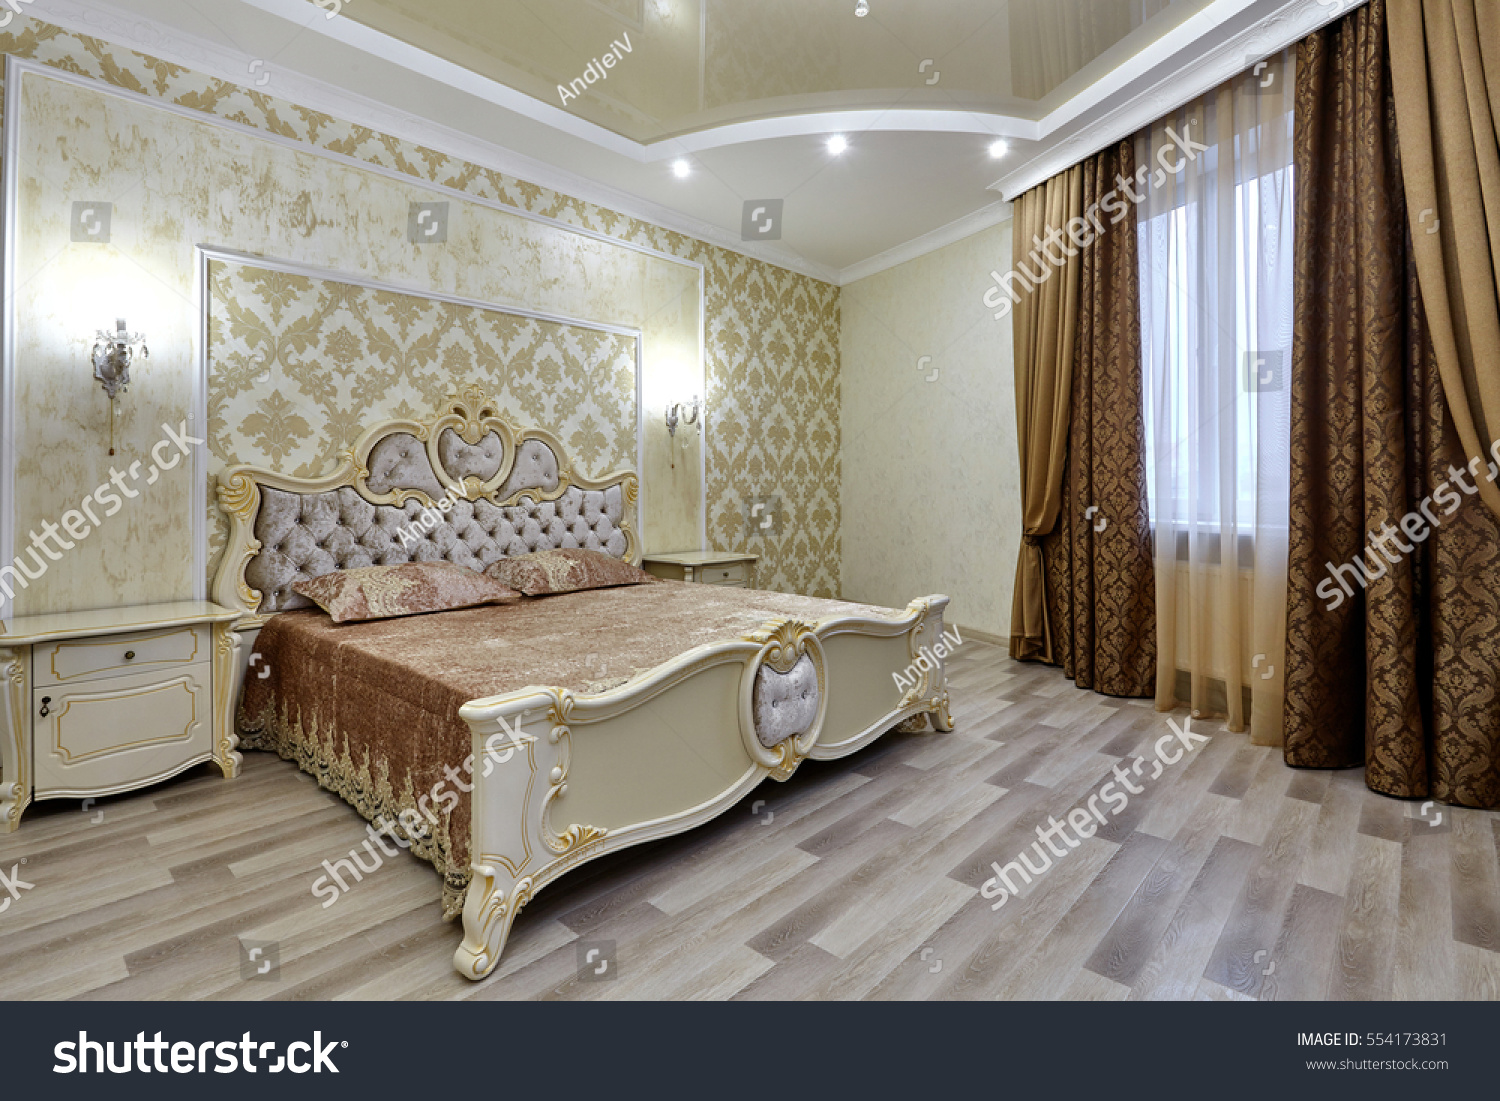 Bedroom beautiful interior stock photo 554173831 for Beautiful bedroom interior